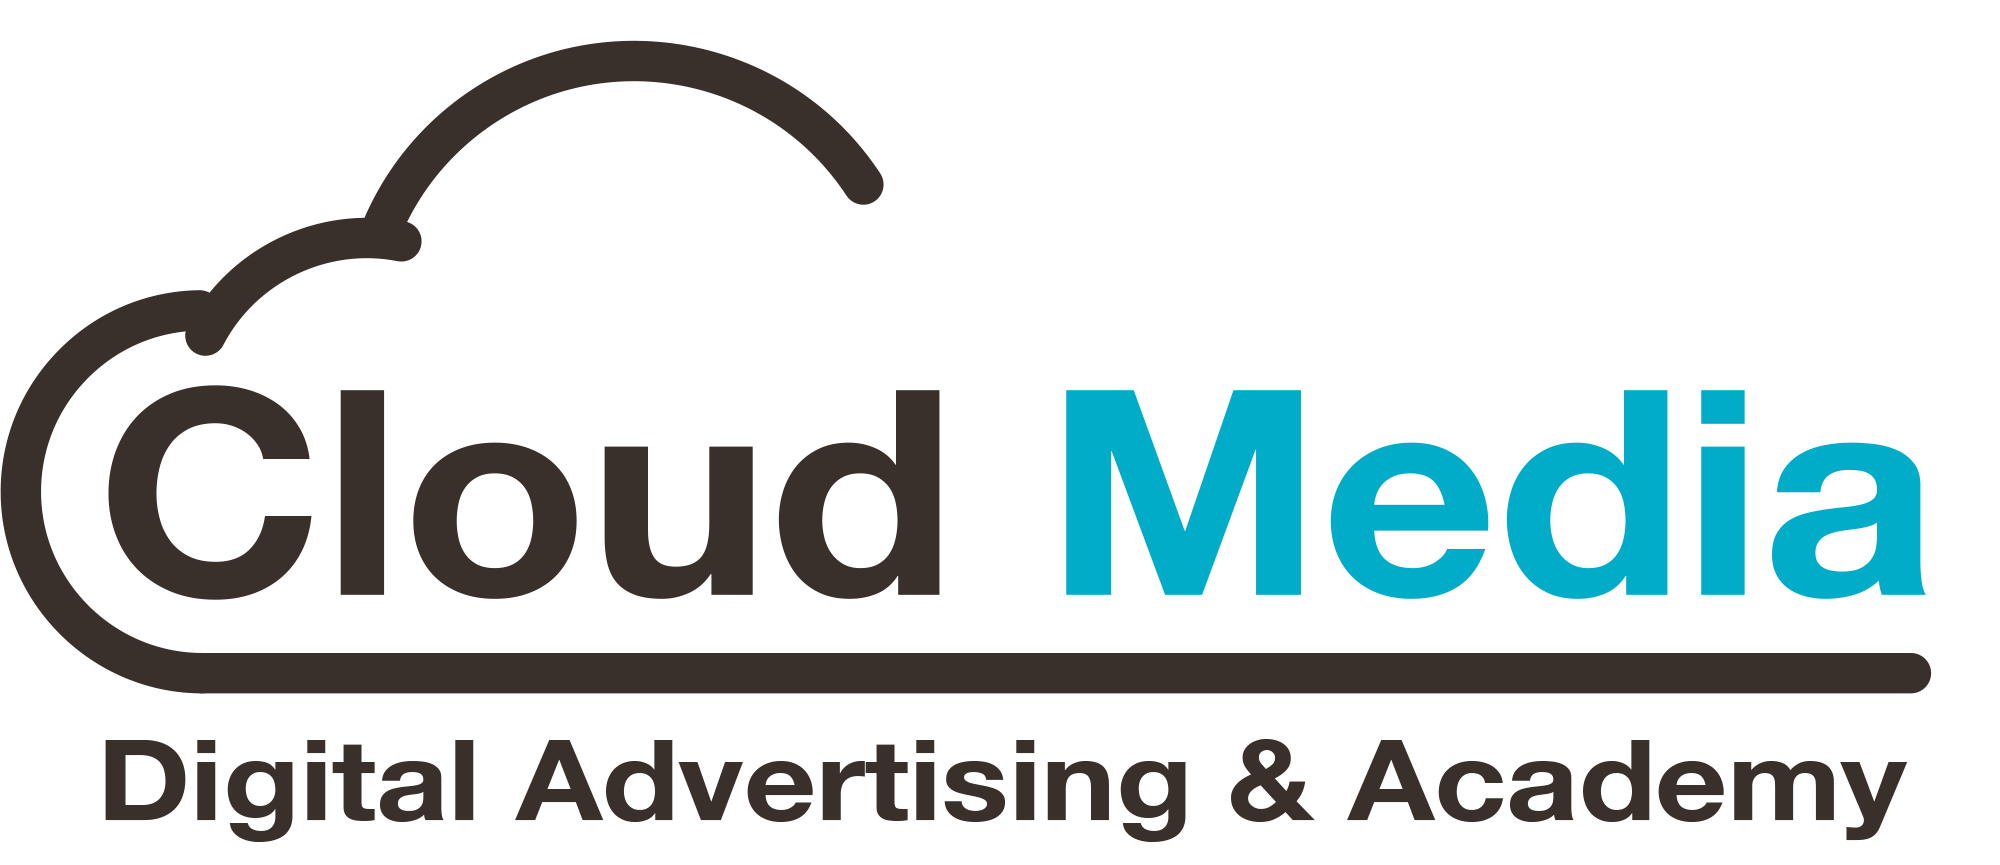 Cloud Media Academy